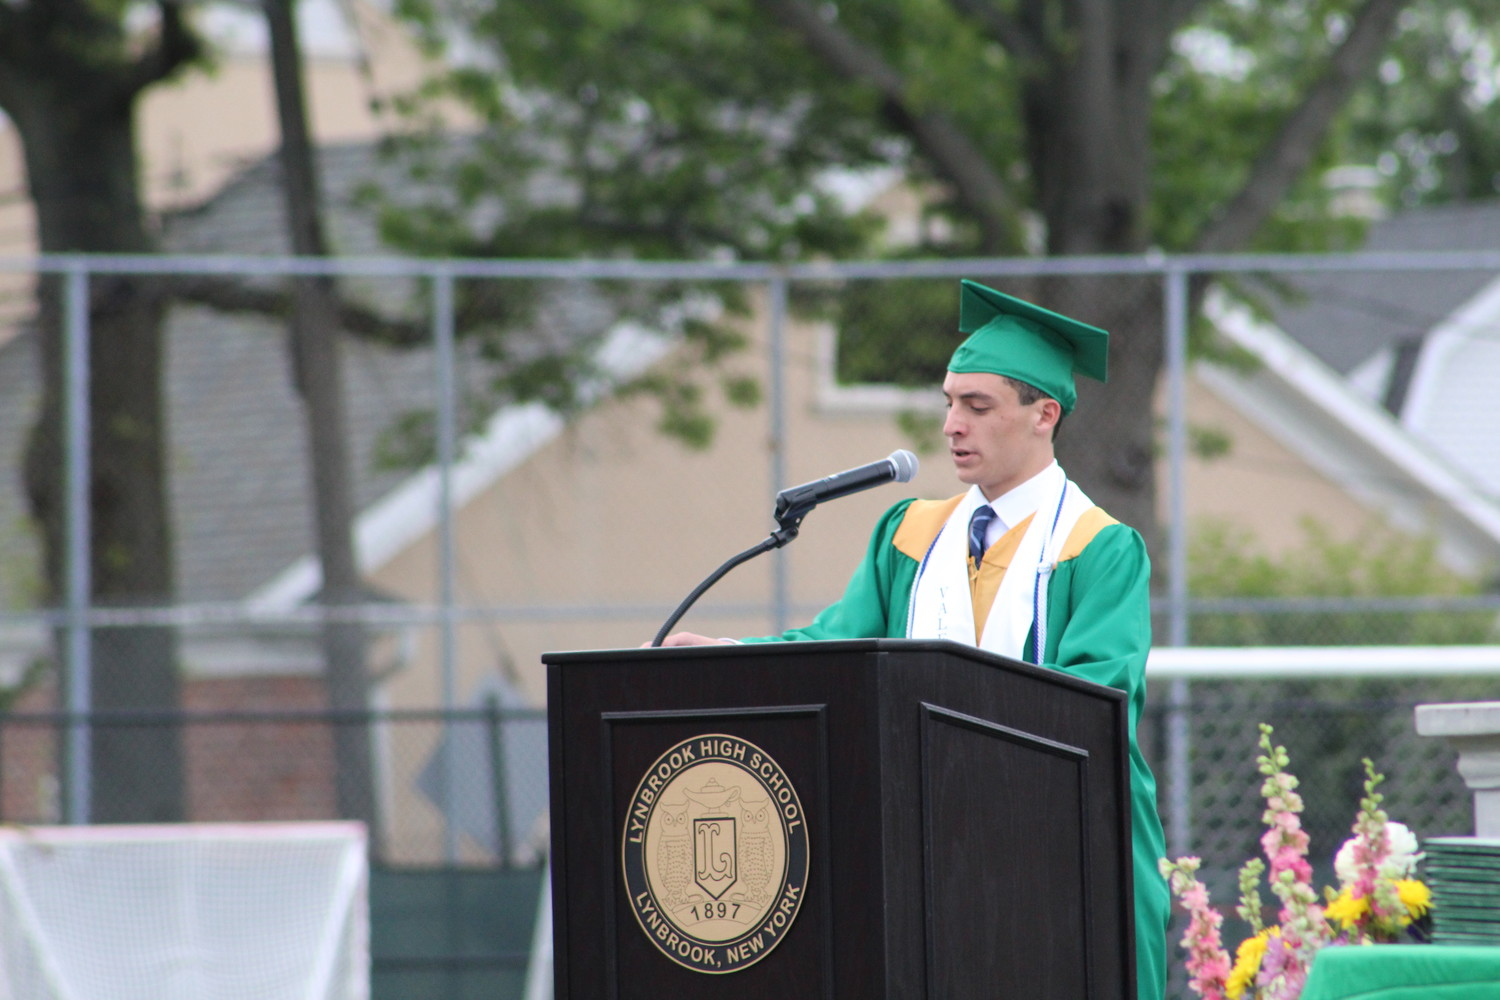 Valedictorian Dustin Mandell spoke about the senior class' accomplishments during his graduation speech.